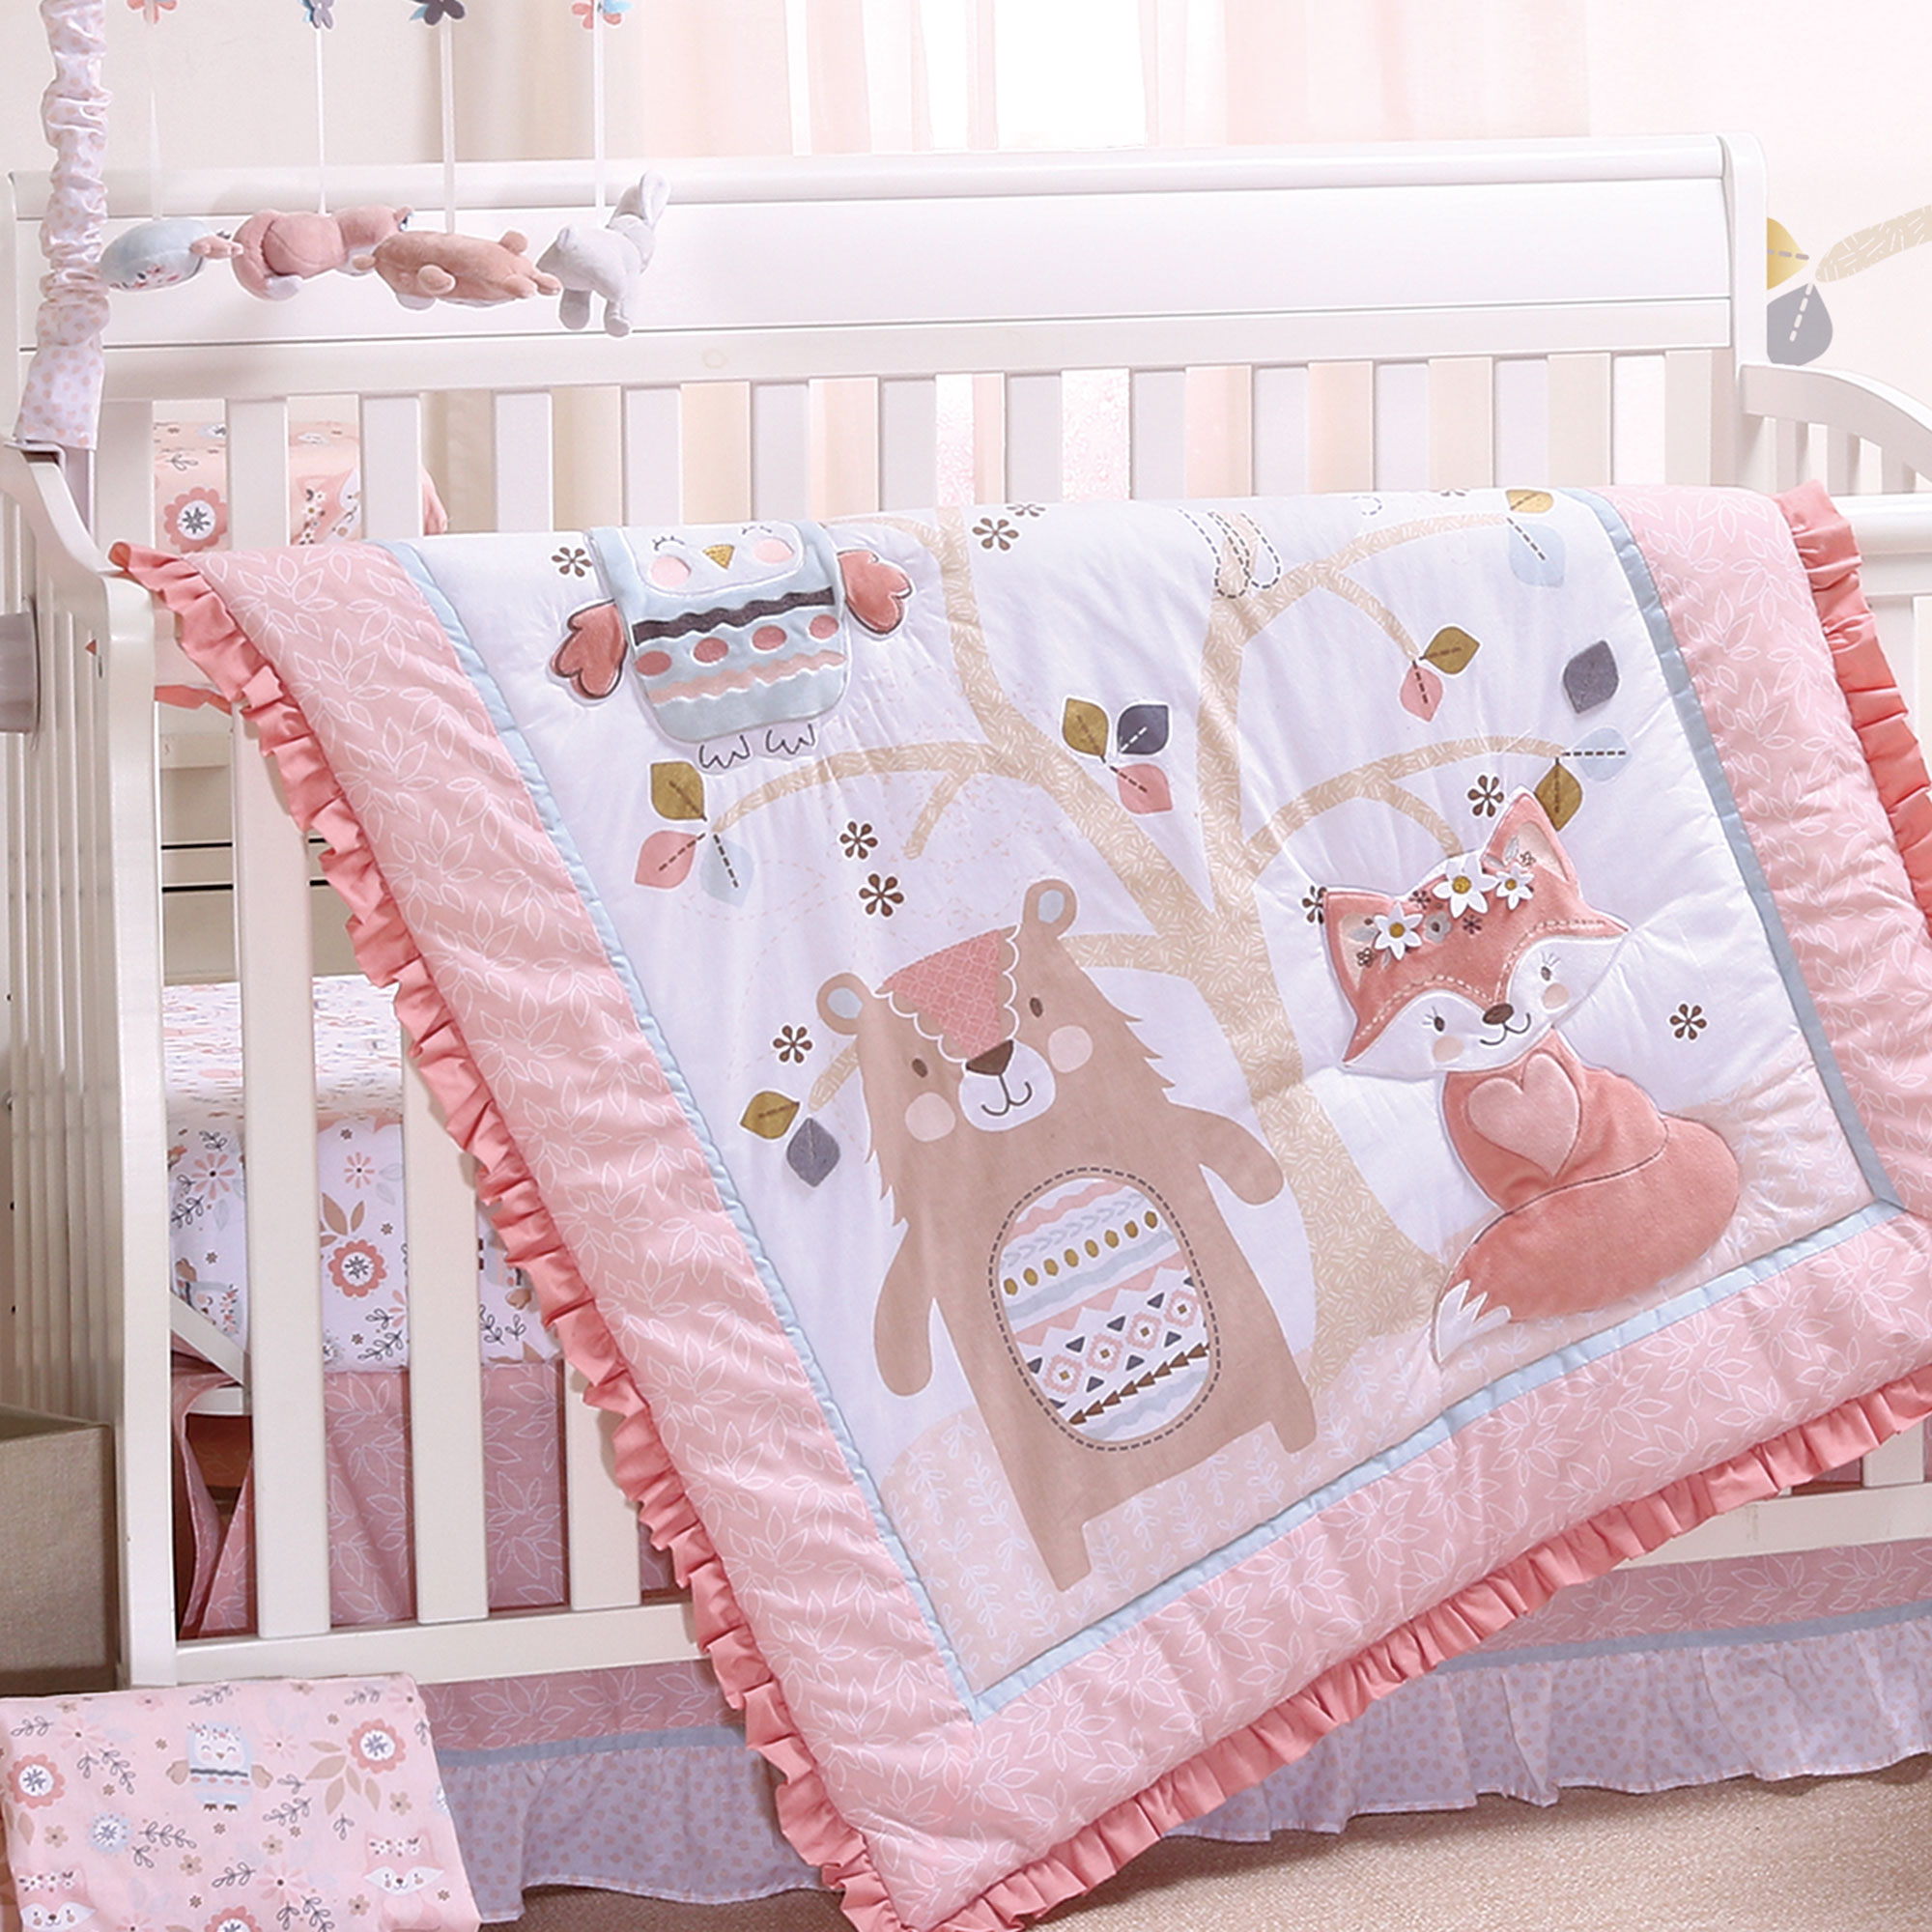 woodland friends 4 piece forest animal theme baby crib bedding set rose pink